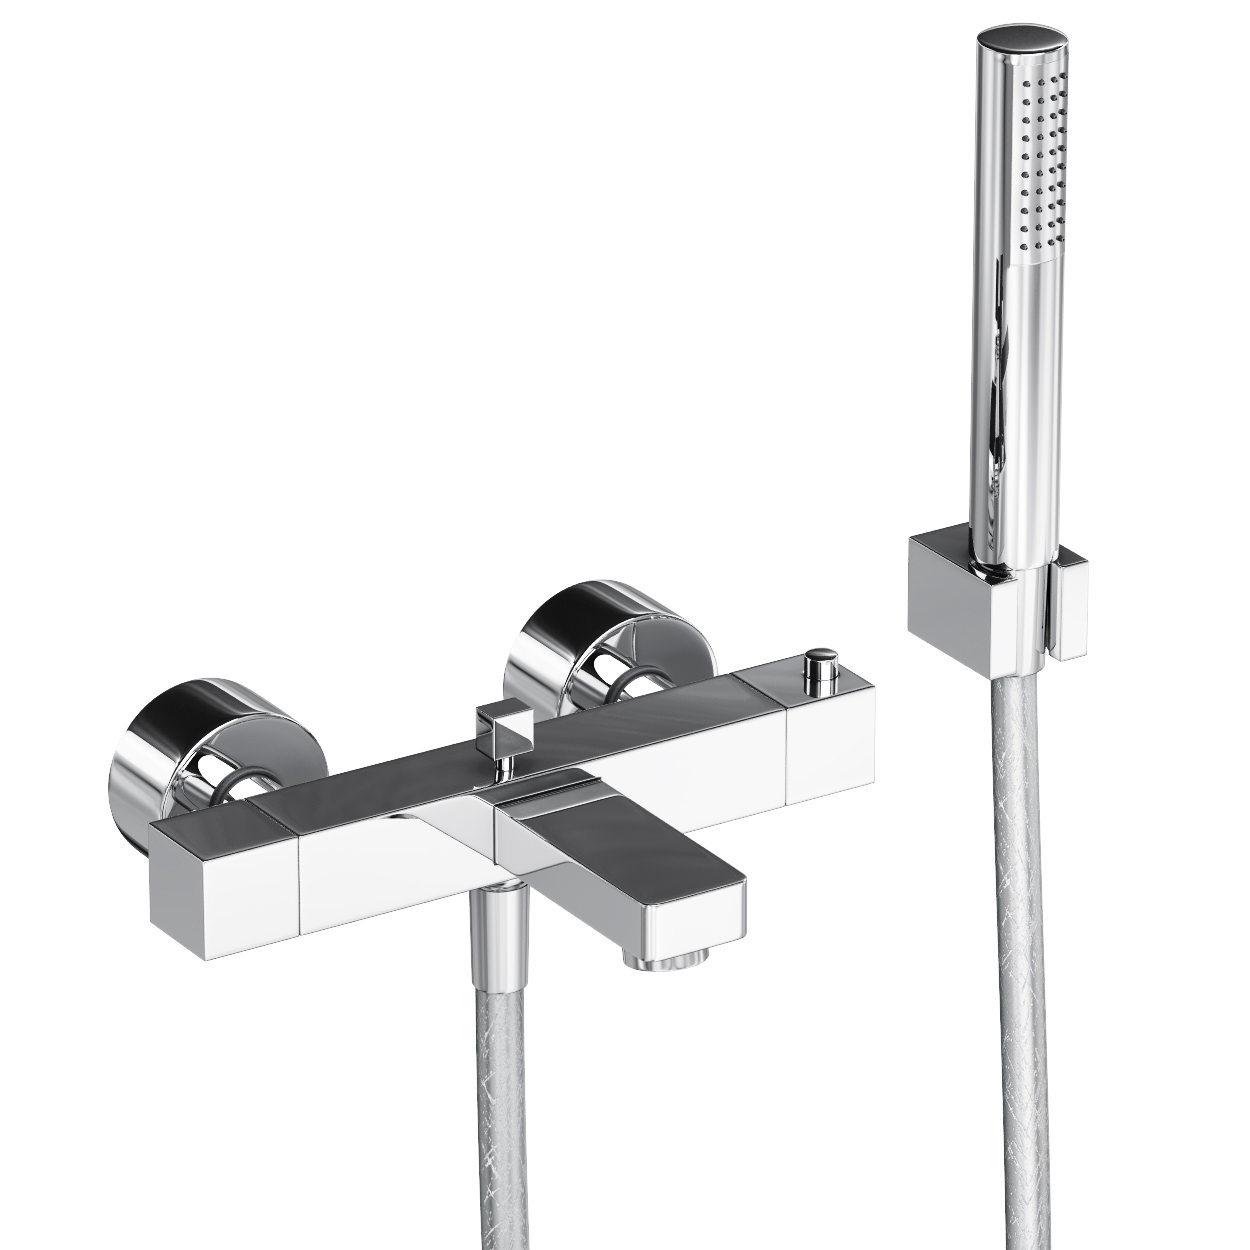 abode fervour thermostatic wall mounted bath shower mixer tap